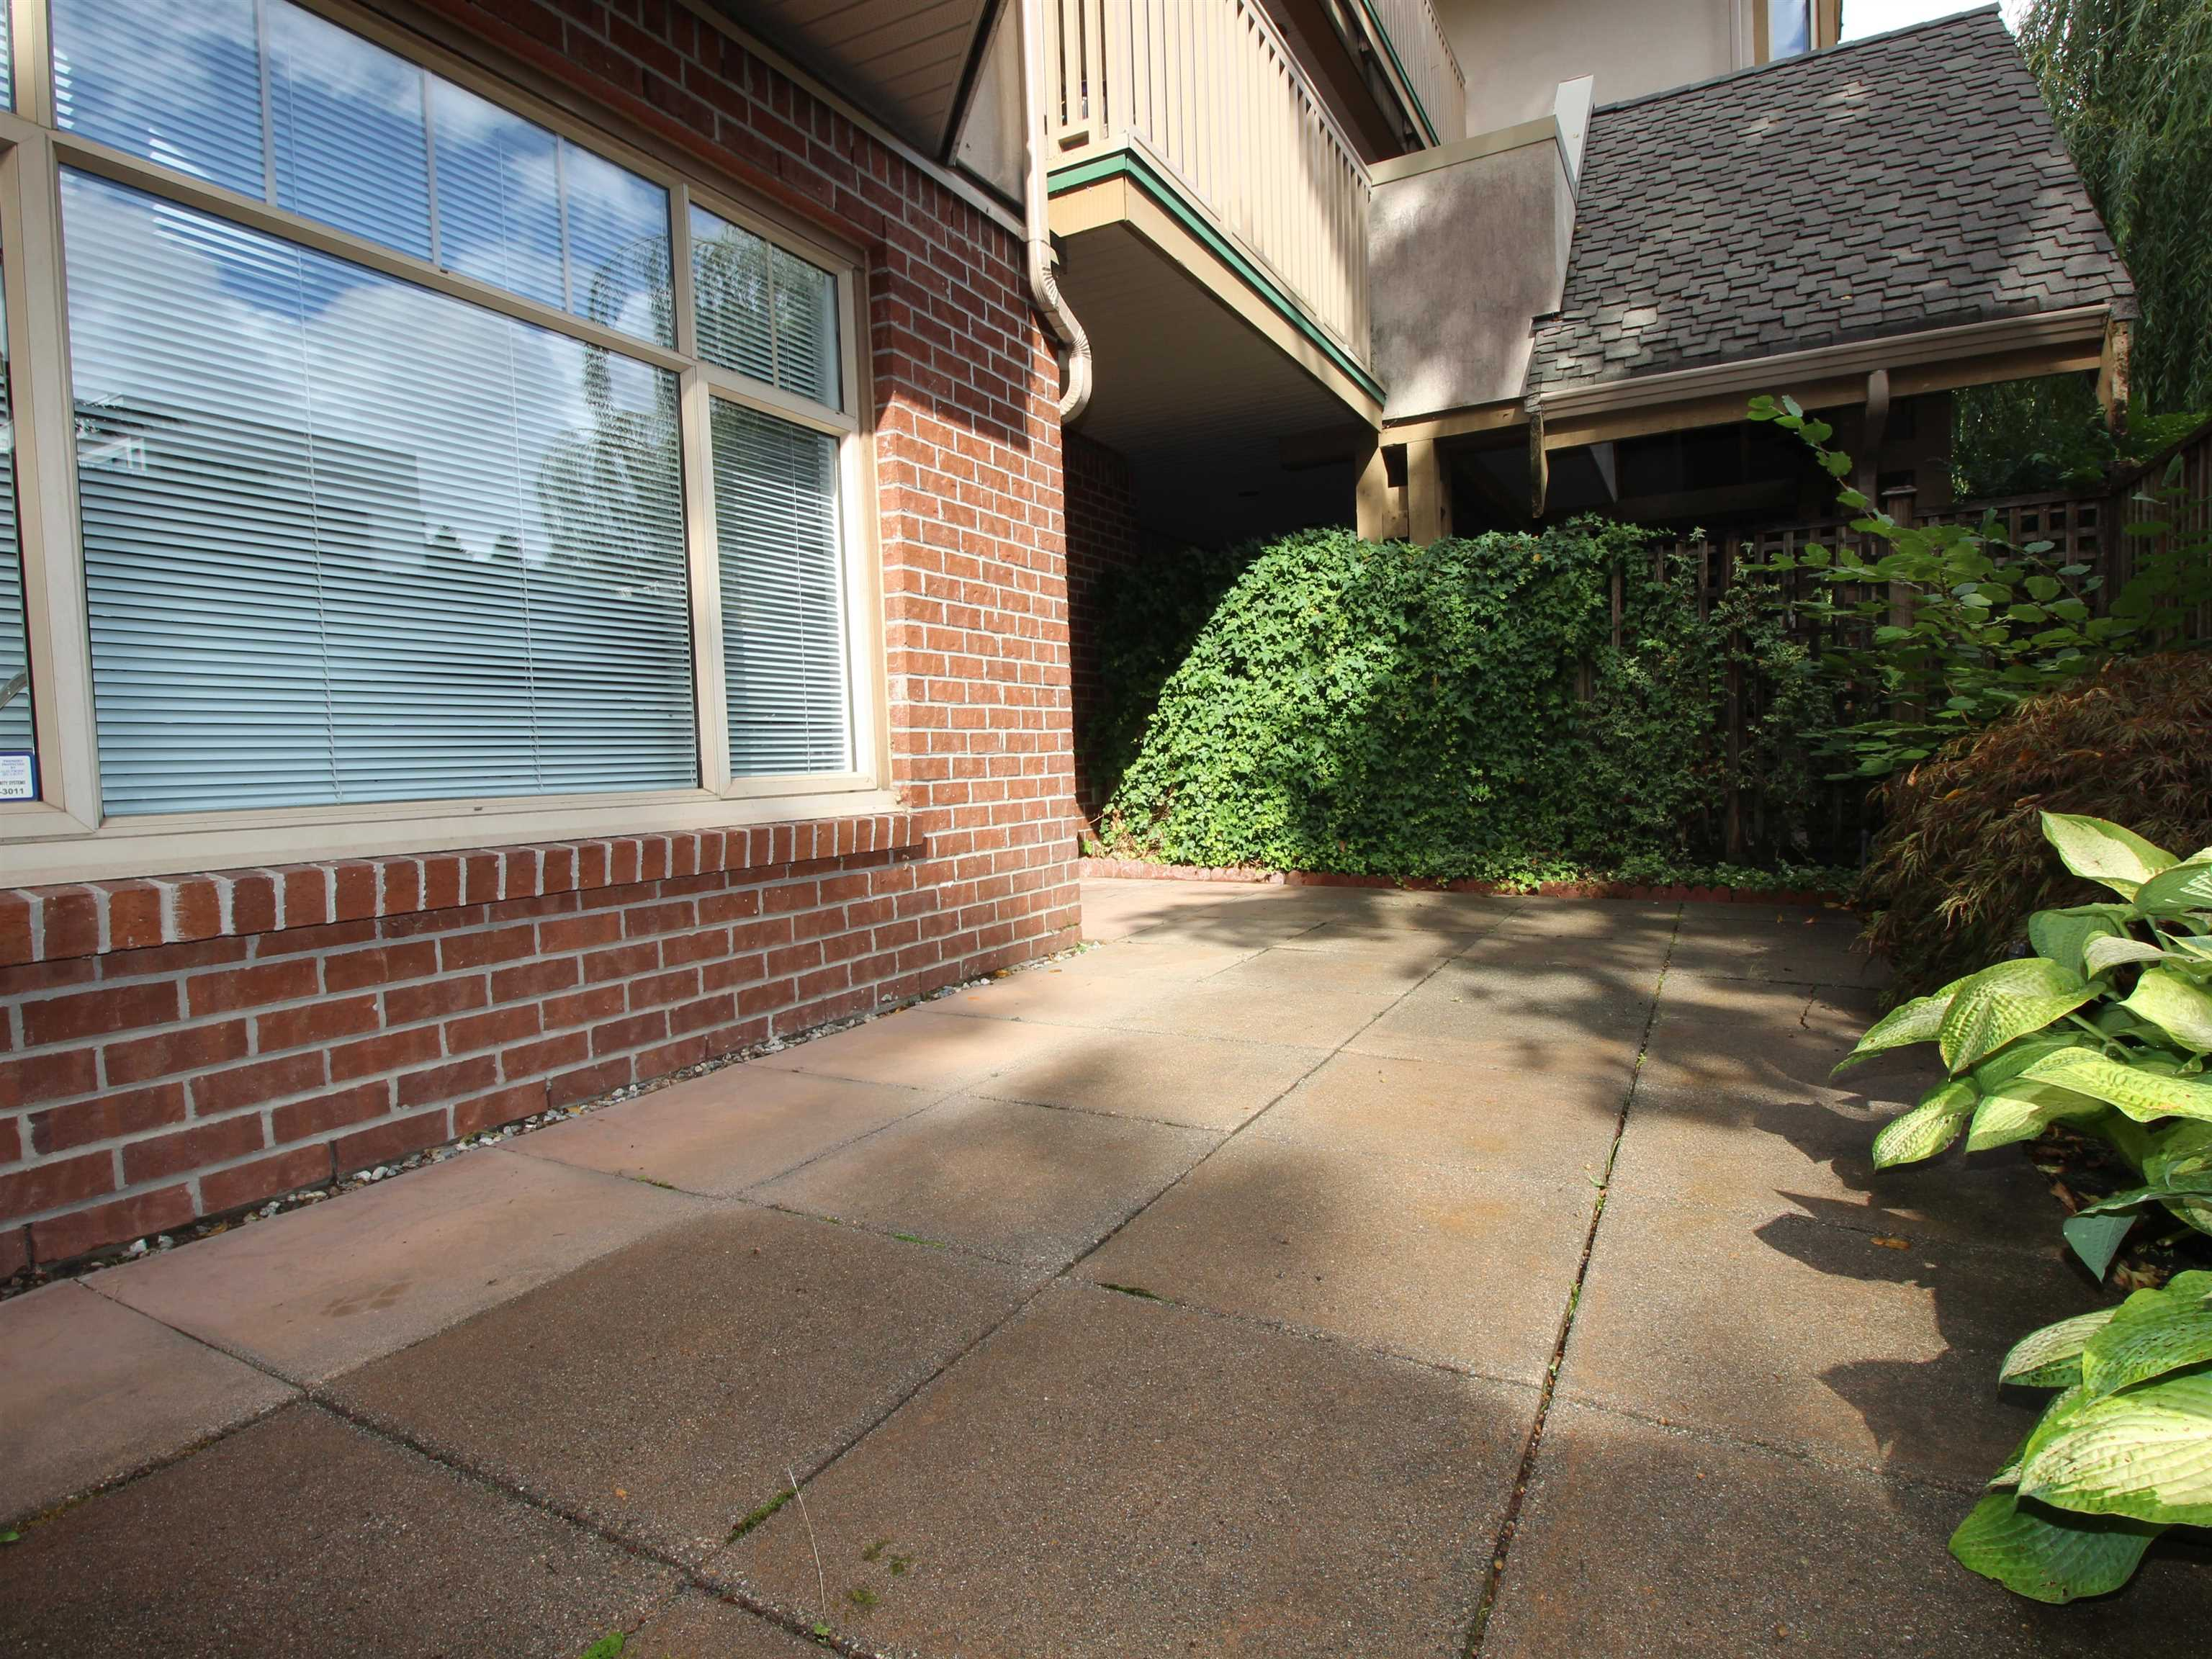 307 2059 CHESTERFIELD AVENUE - Central Lonsdale Apartment/Condo for sale, 1 Bedroom (R2618308) - #18